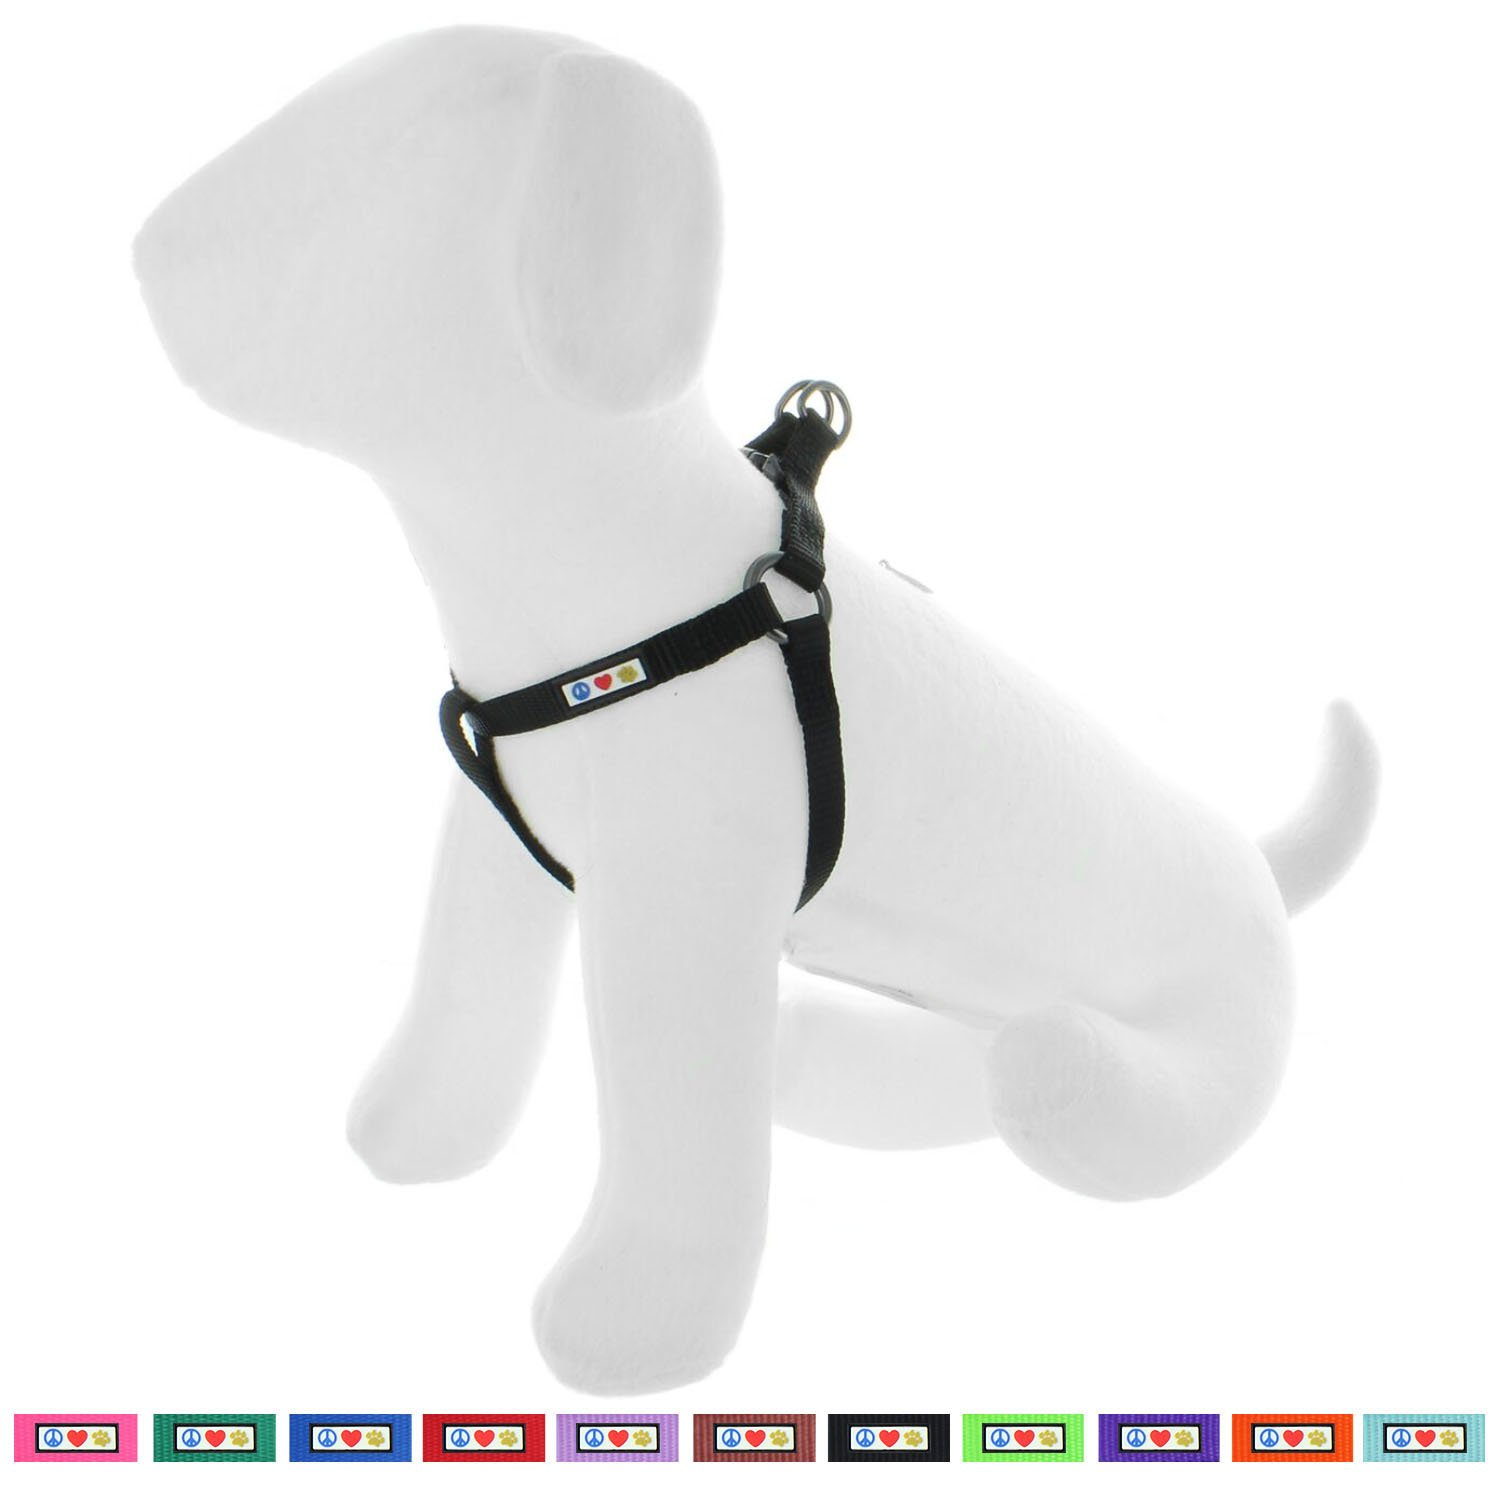 Pawtitas Pet Solid Color Step in Dog Harness, Step in or Vest Harness, Comfort Control, Training Walking of Your Puppy/Dog Small Dog Harness S Dog Harness Black